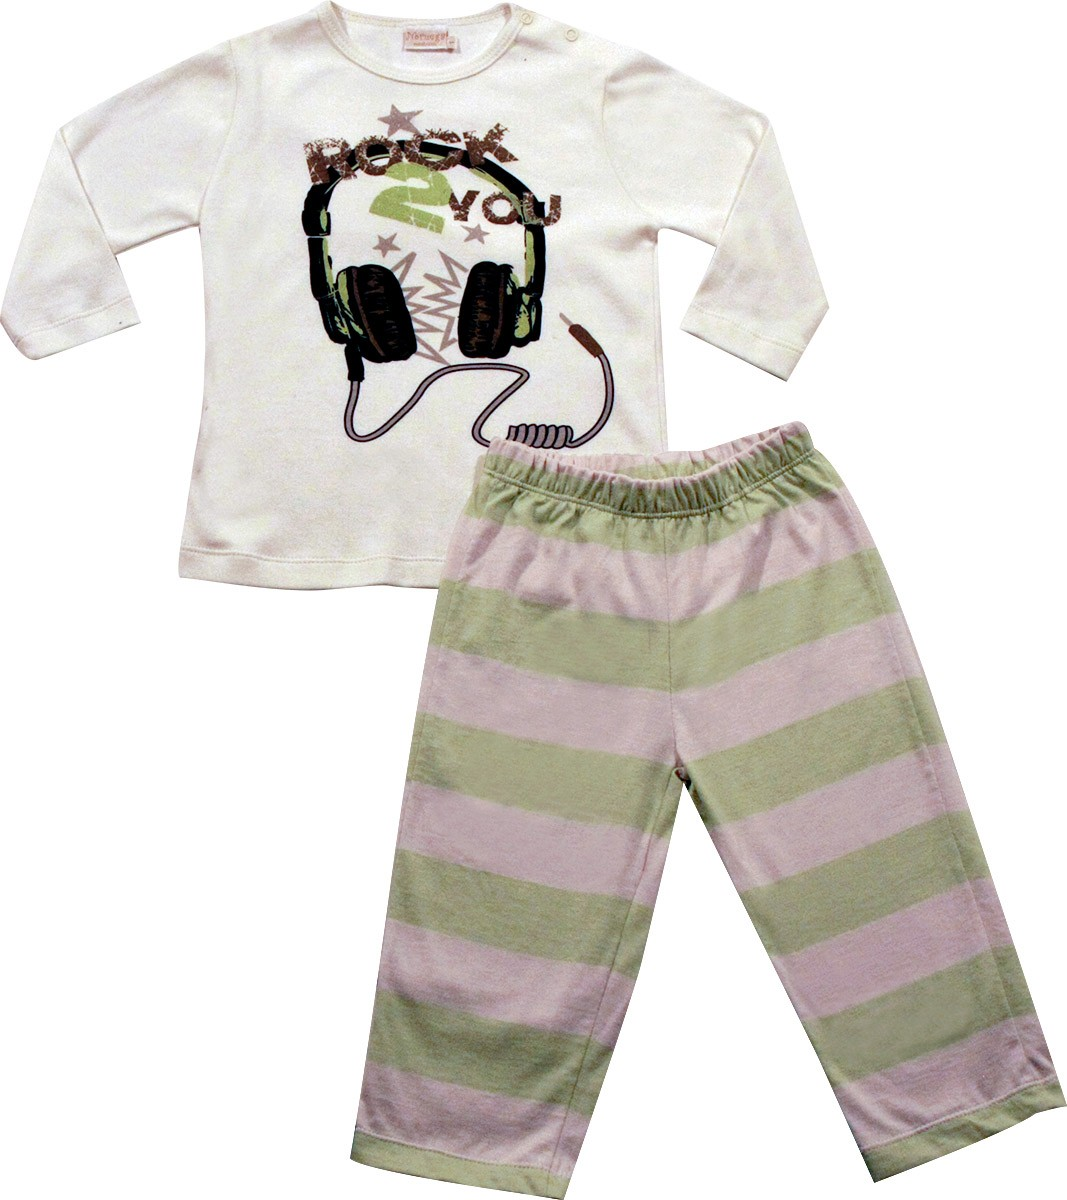 62.161 - Conjunto Pijama Silk Rock 2 You